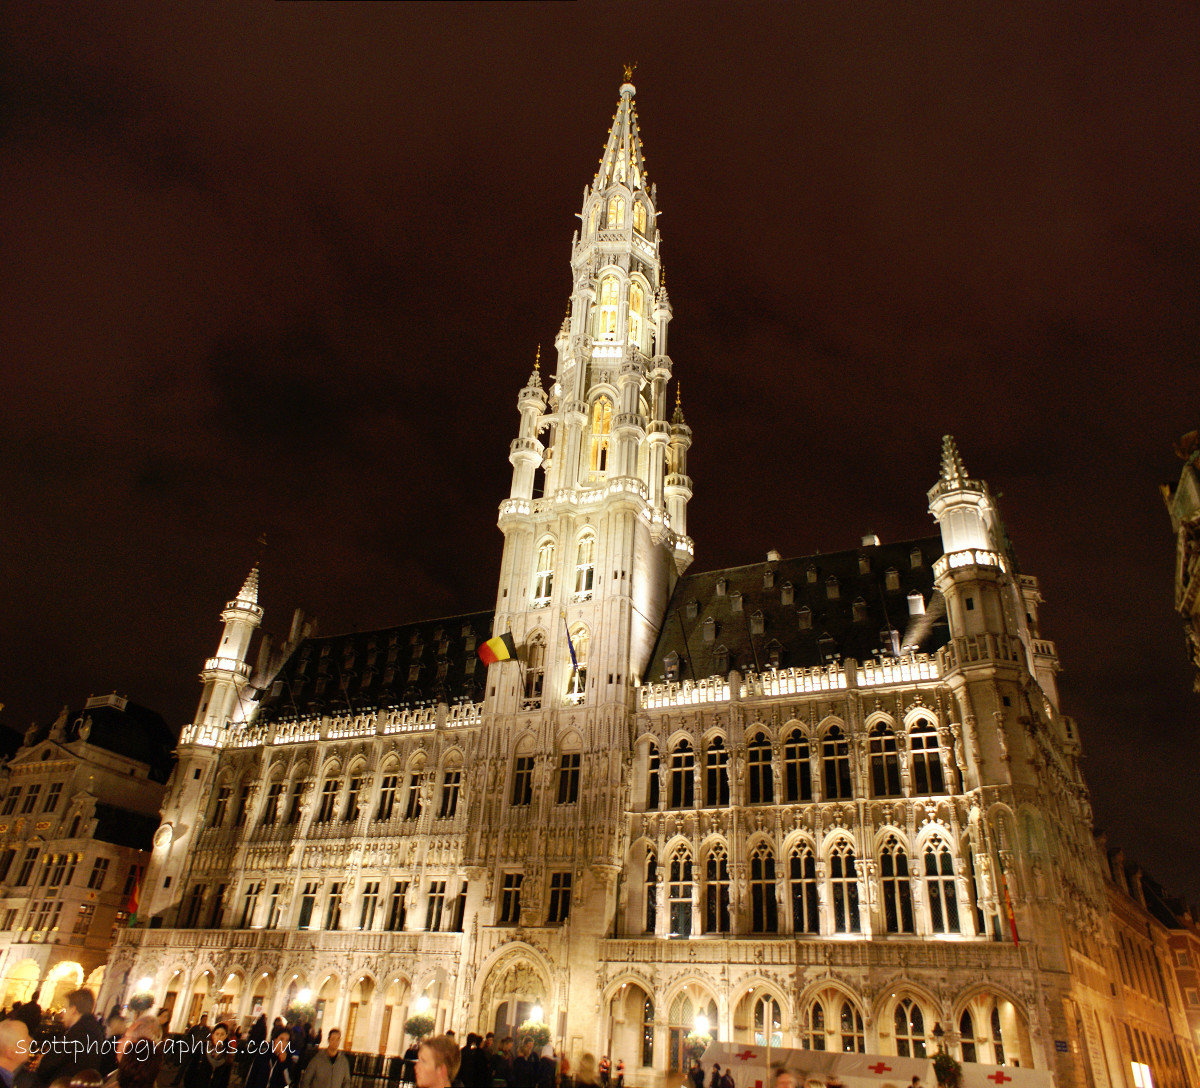 https://www.images.scottphotographics.com/shot-of-the-day/%2317/brussels-town-hall-1.jpg